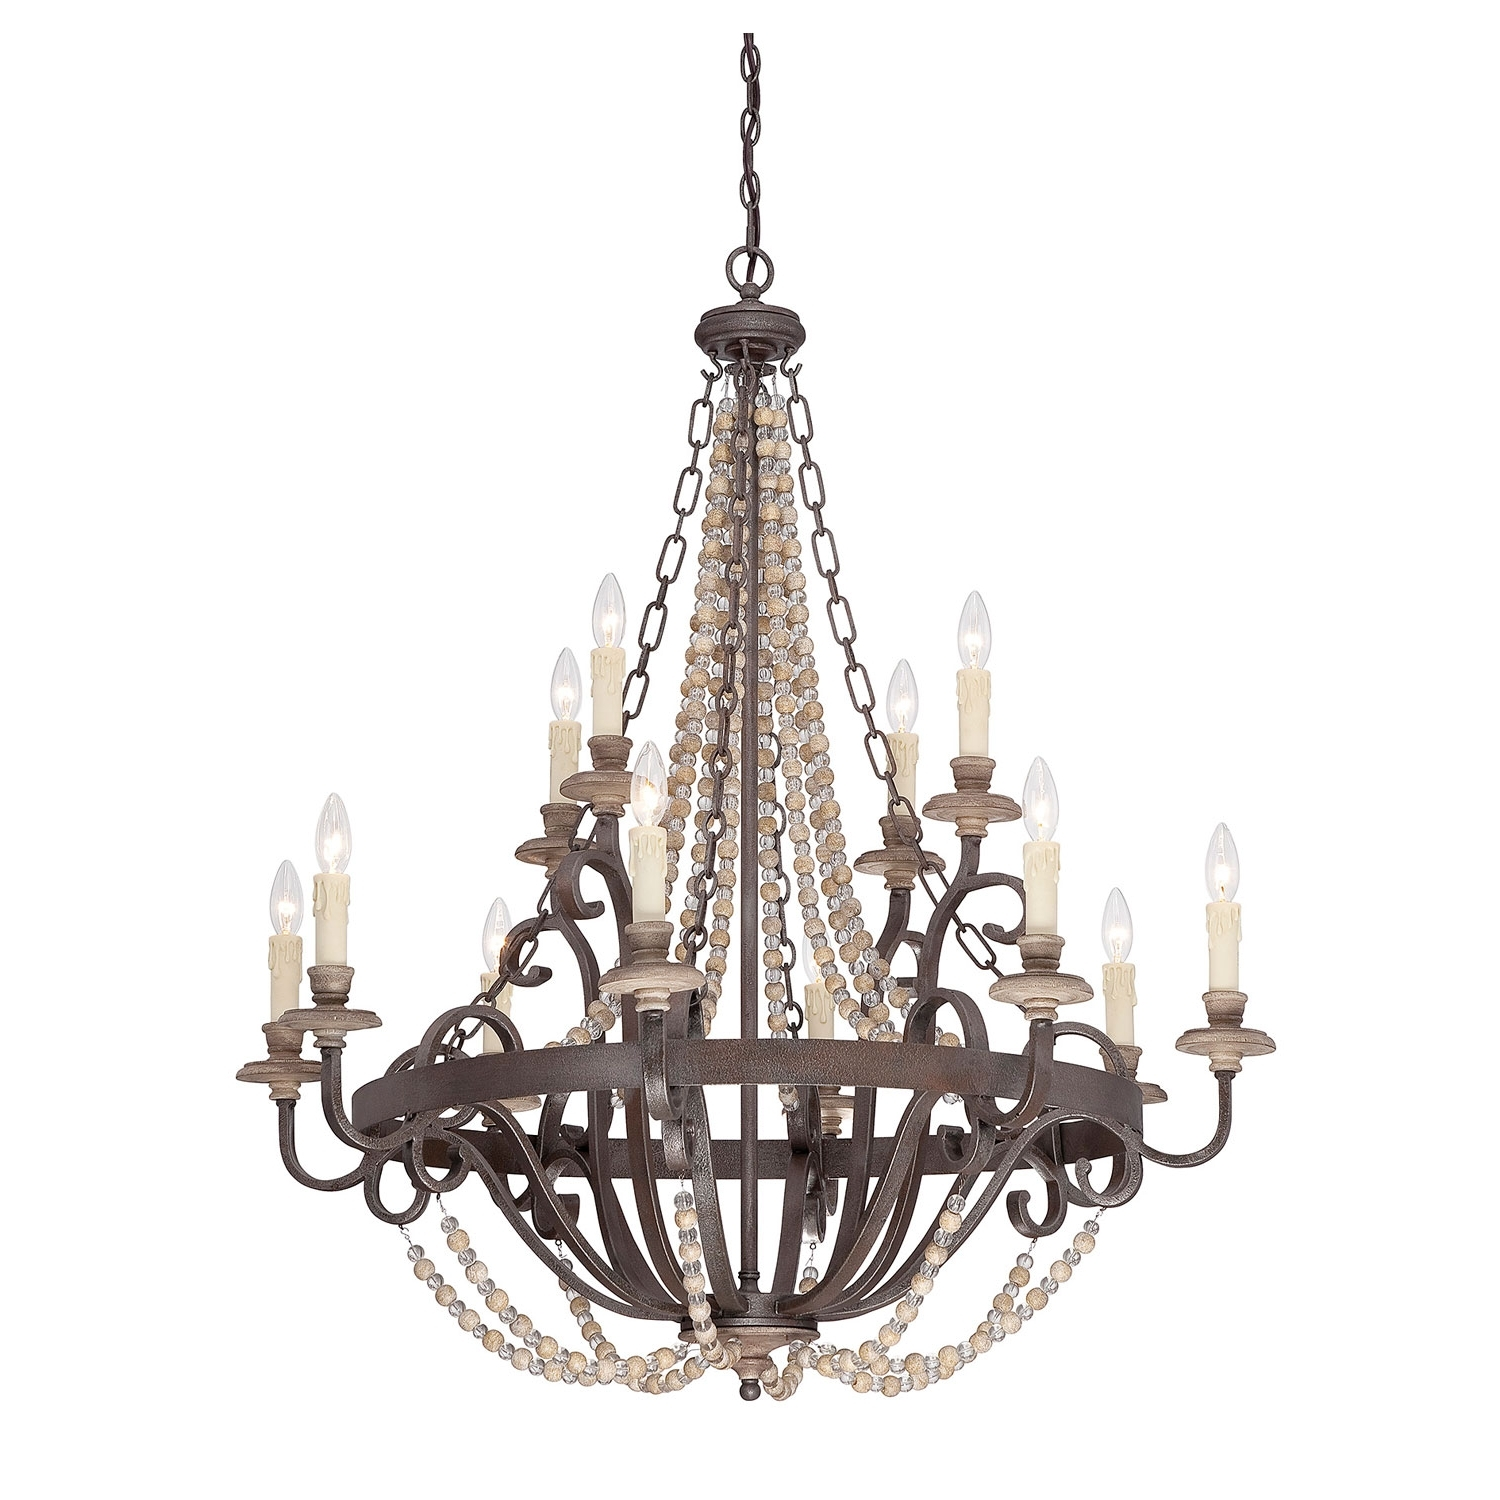 Country Chic Chandelier Within Preferred Light : Chandeliers Made In Usa Crystal Modern Iron Shabby Chic (View 12 of 20)